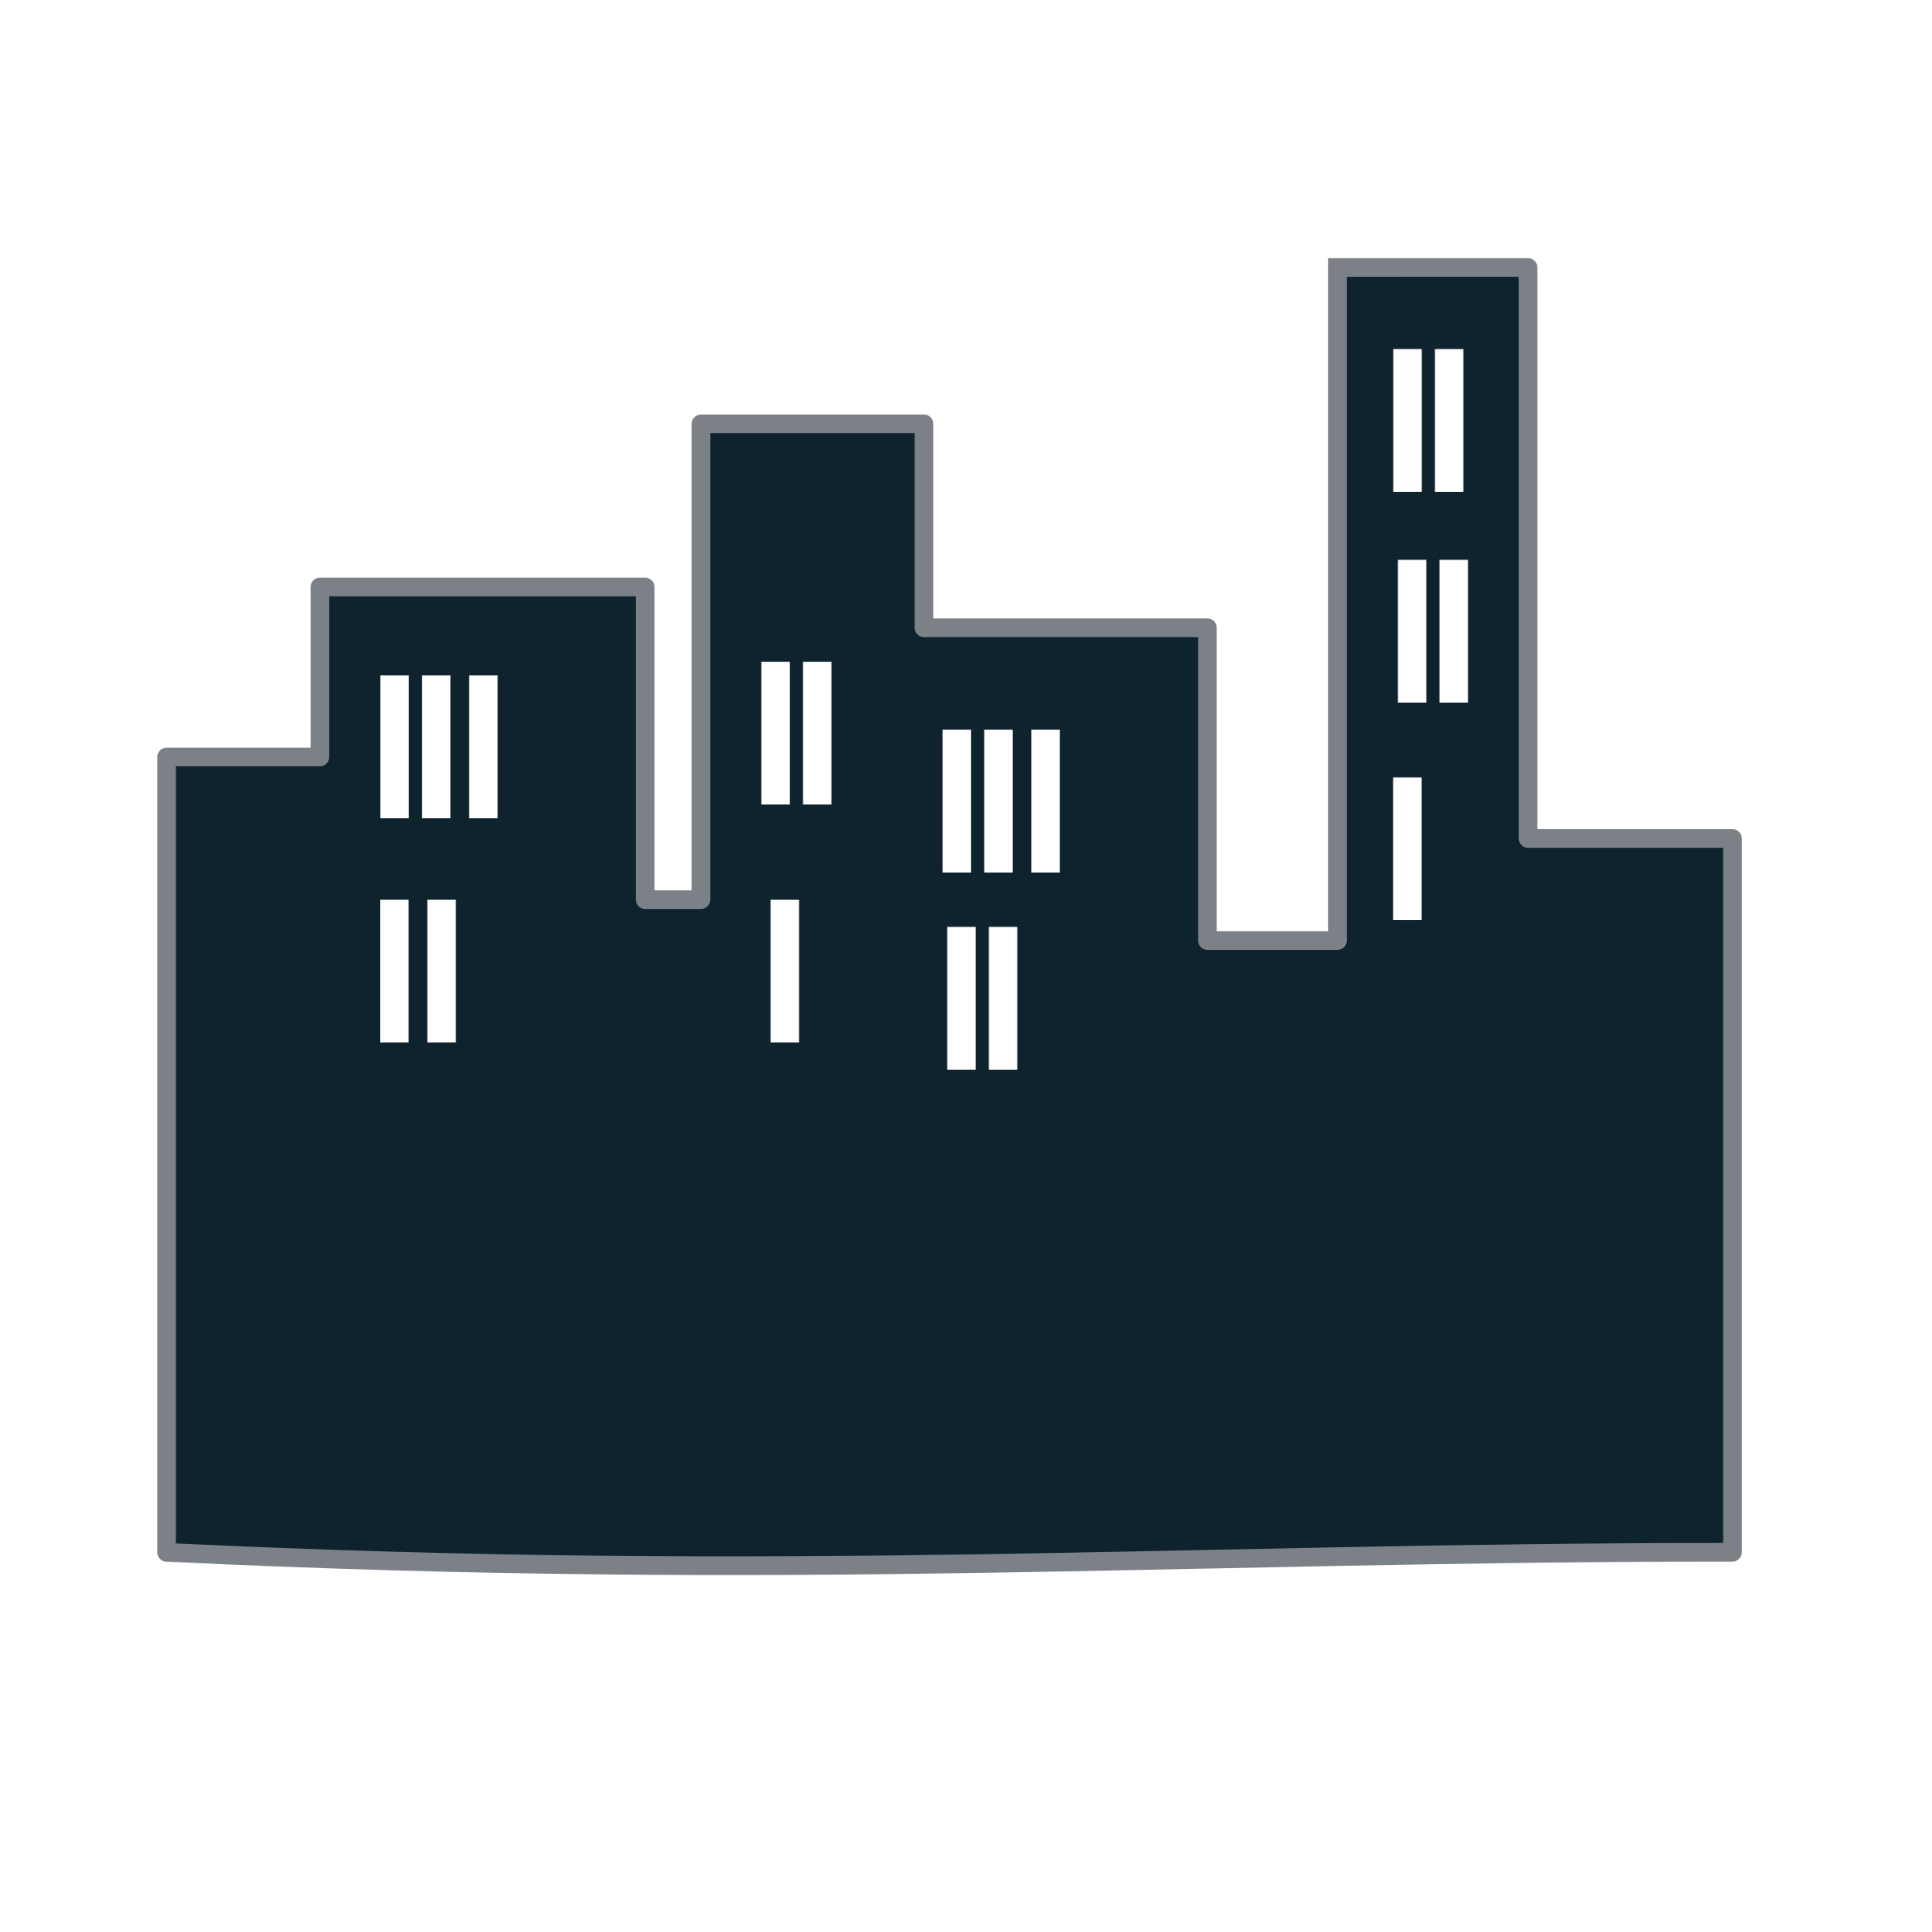 Buildings icon by netalloy